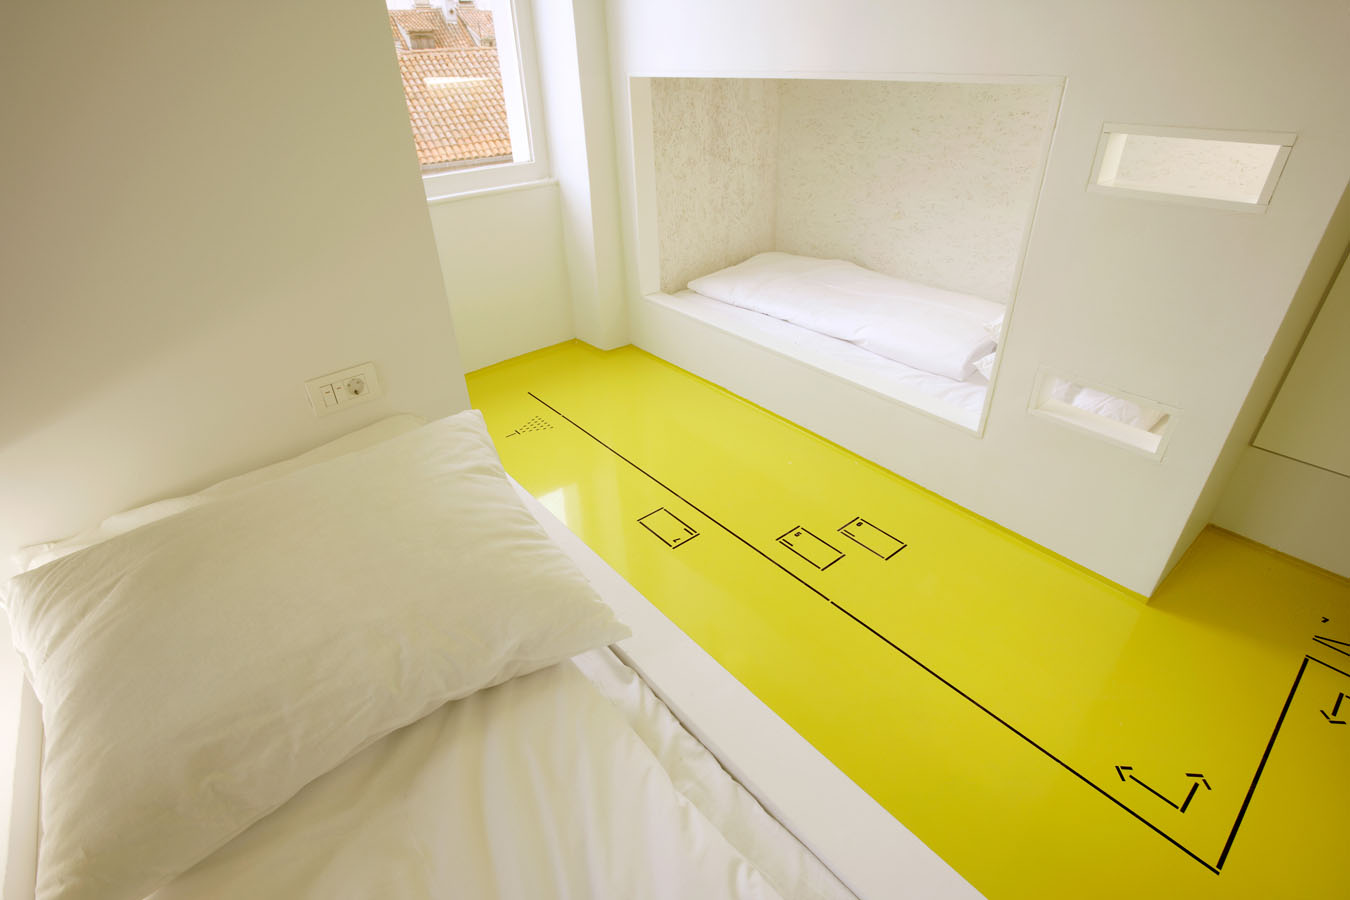 Hostel golly bossy by studio up your no 1 source of for Hostel design